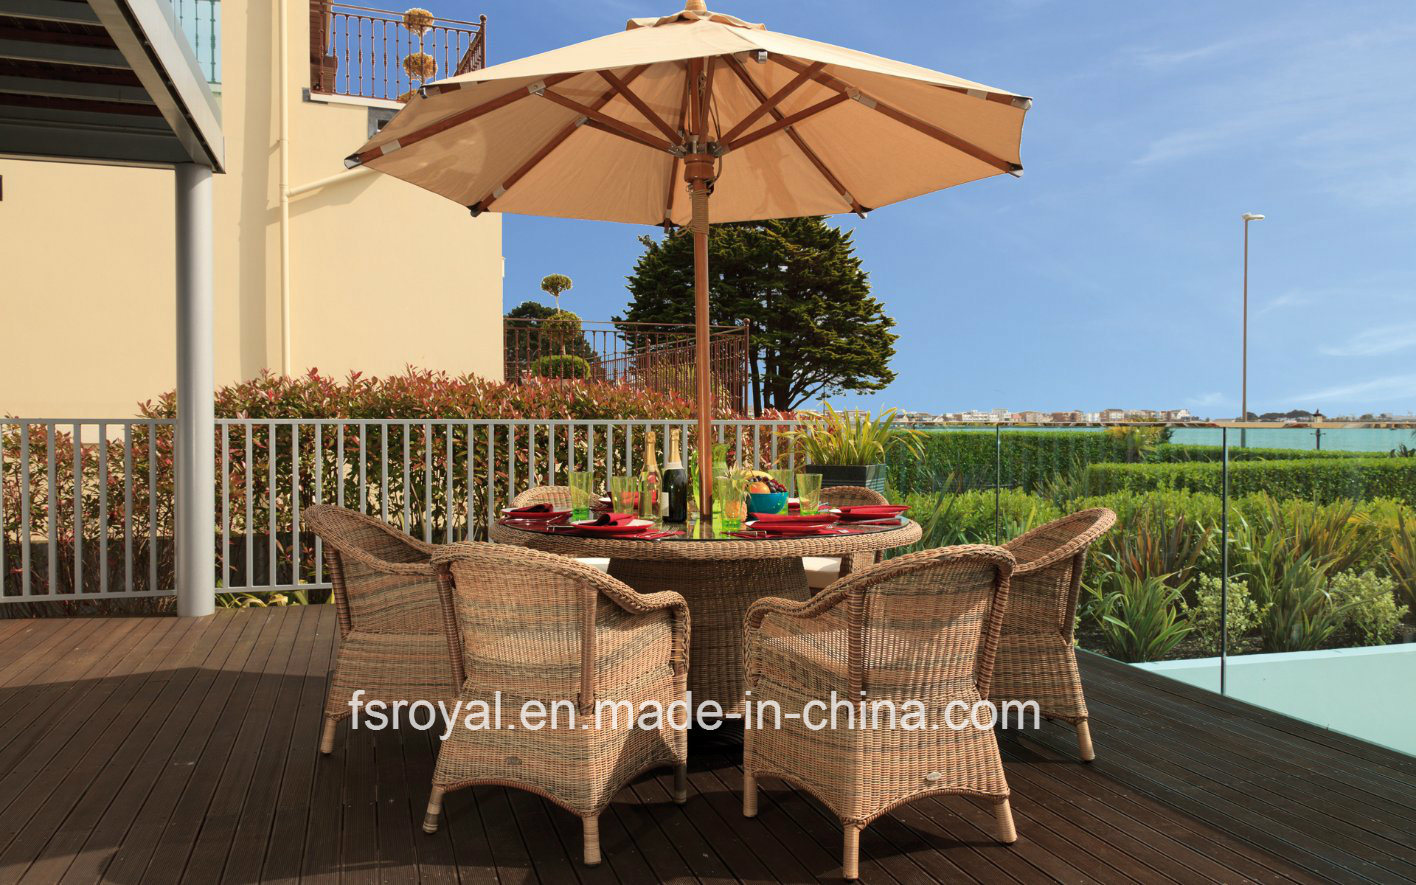 China Outdoor Garden Dining Sets Hotel Patio Restaurant Furniture Chairs    China Dining Furniture, Hotel Furniture